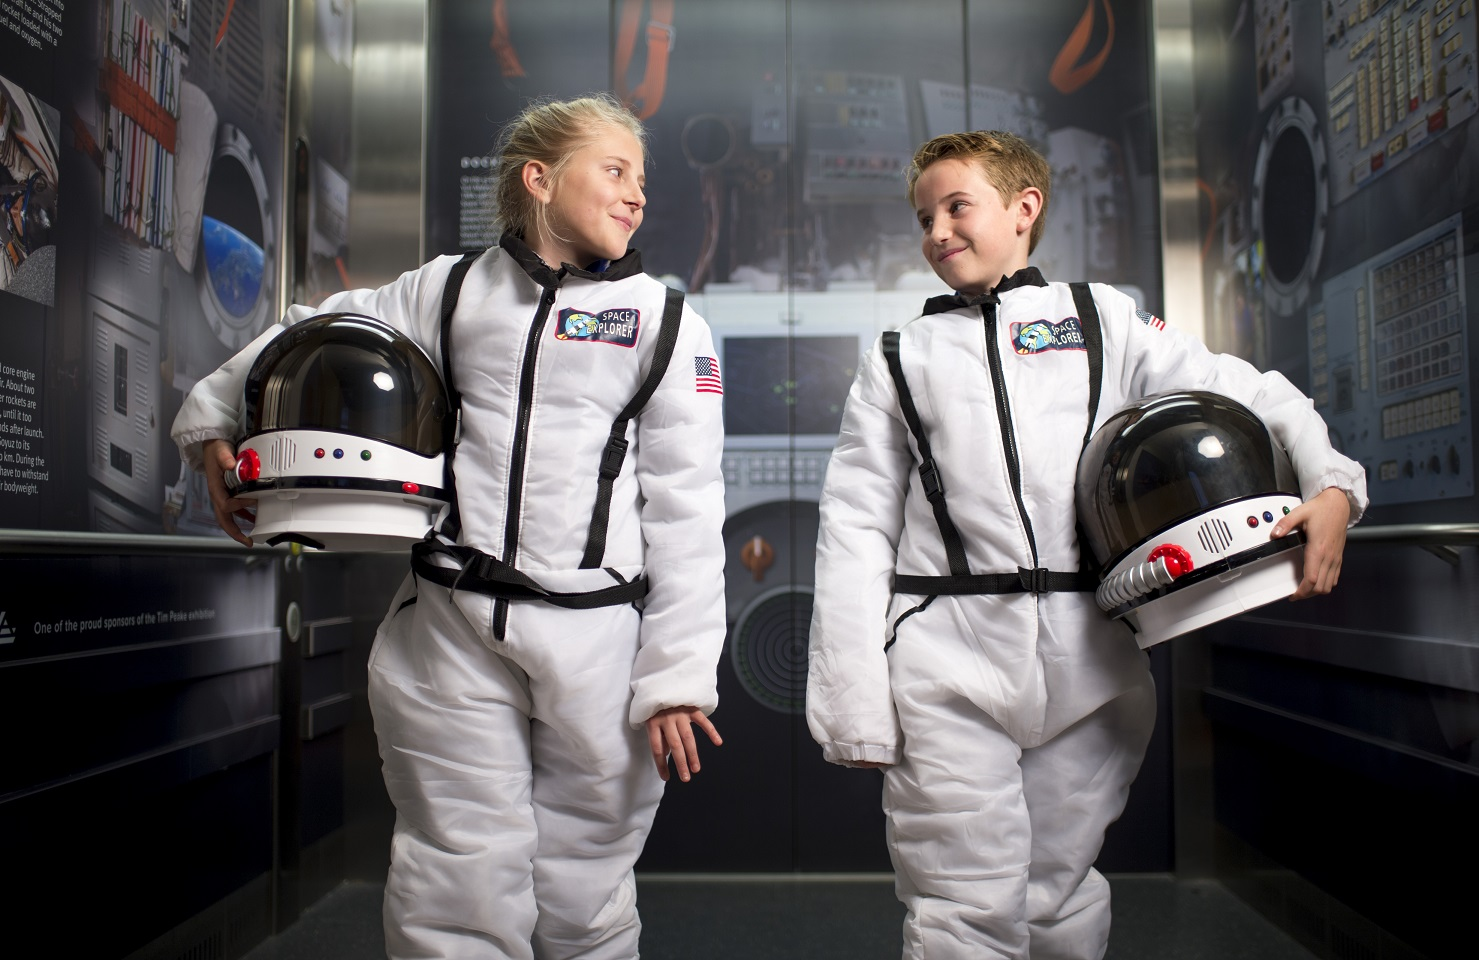 a picture of children in space suits